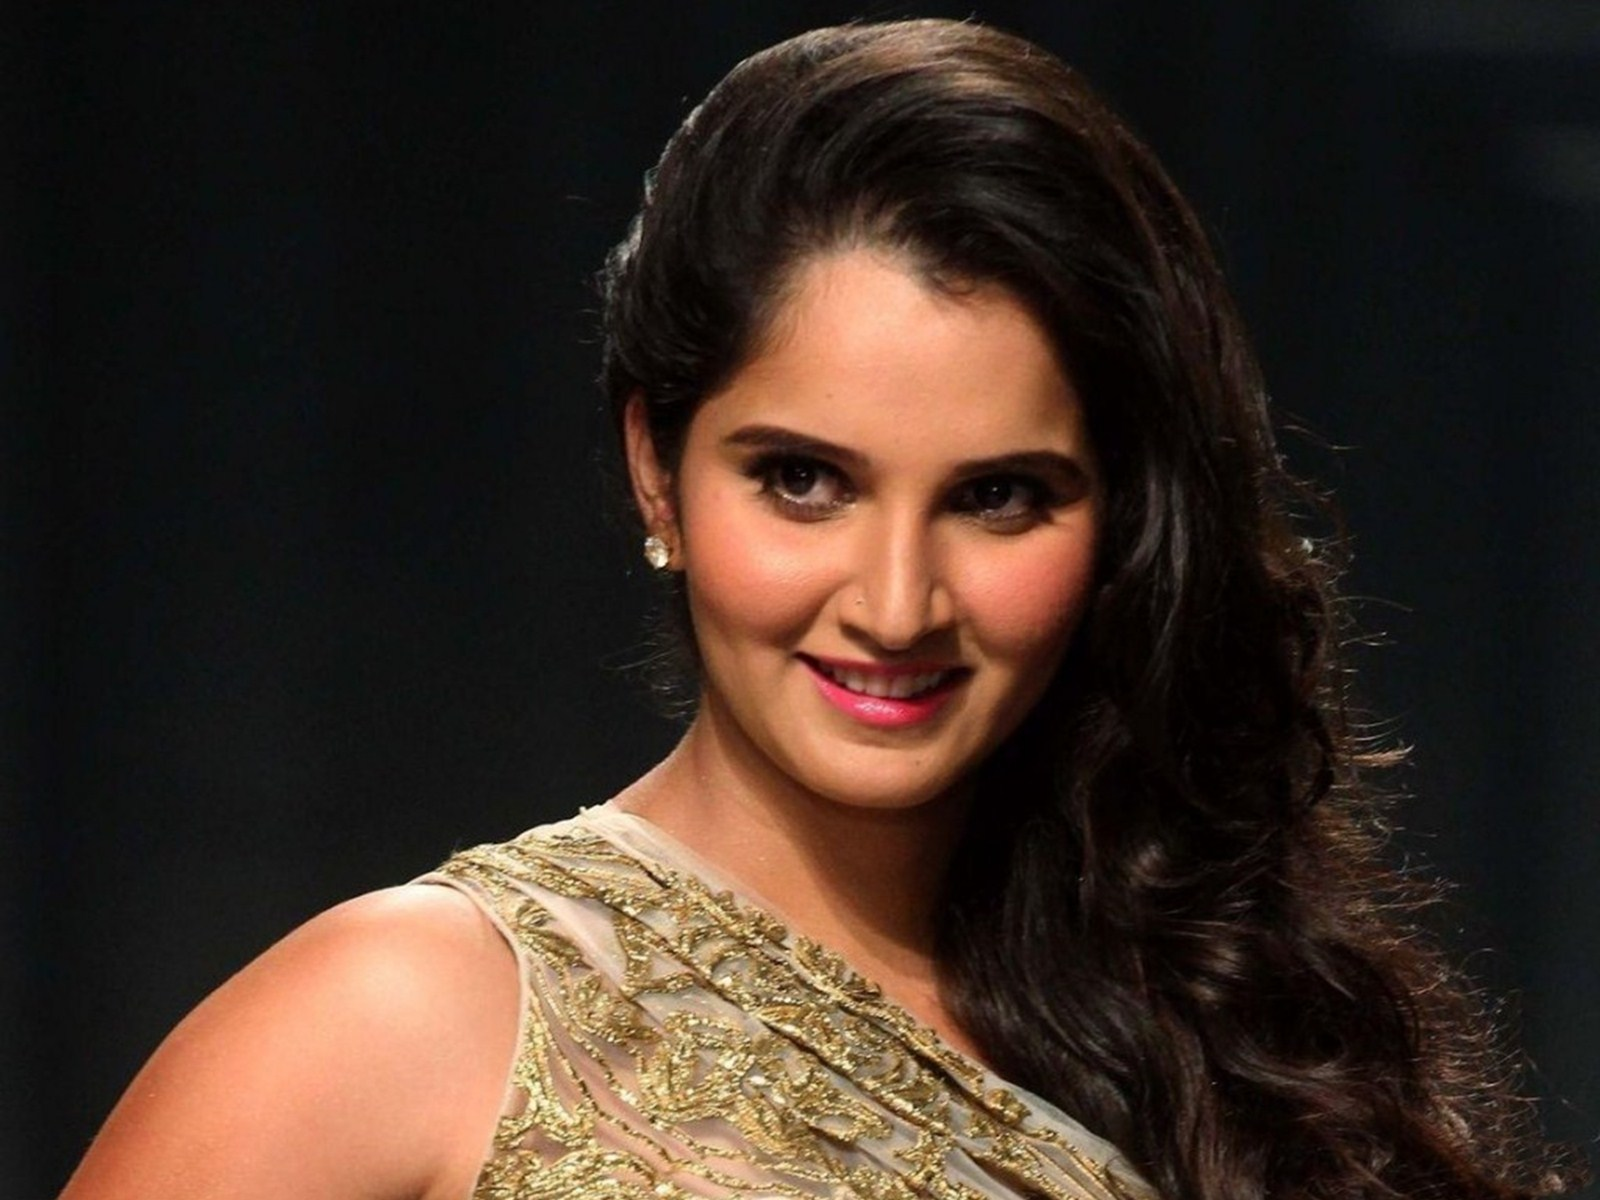 6Sania-Mirza-Birthday.jpg